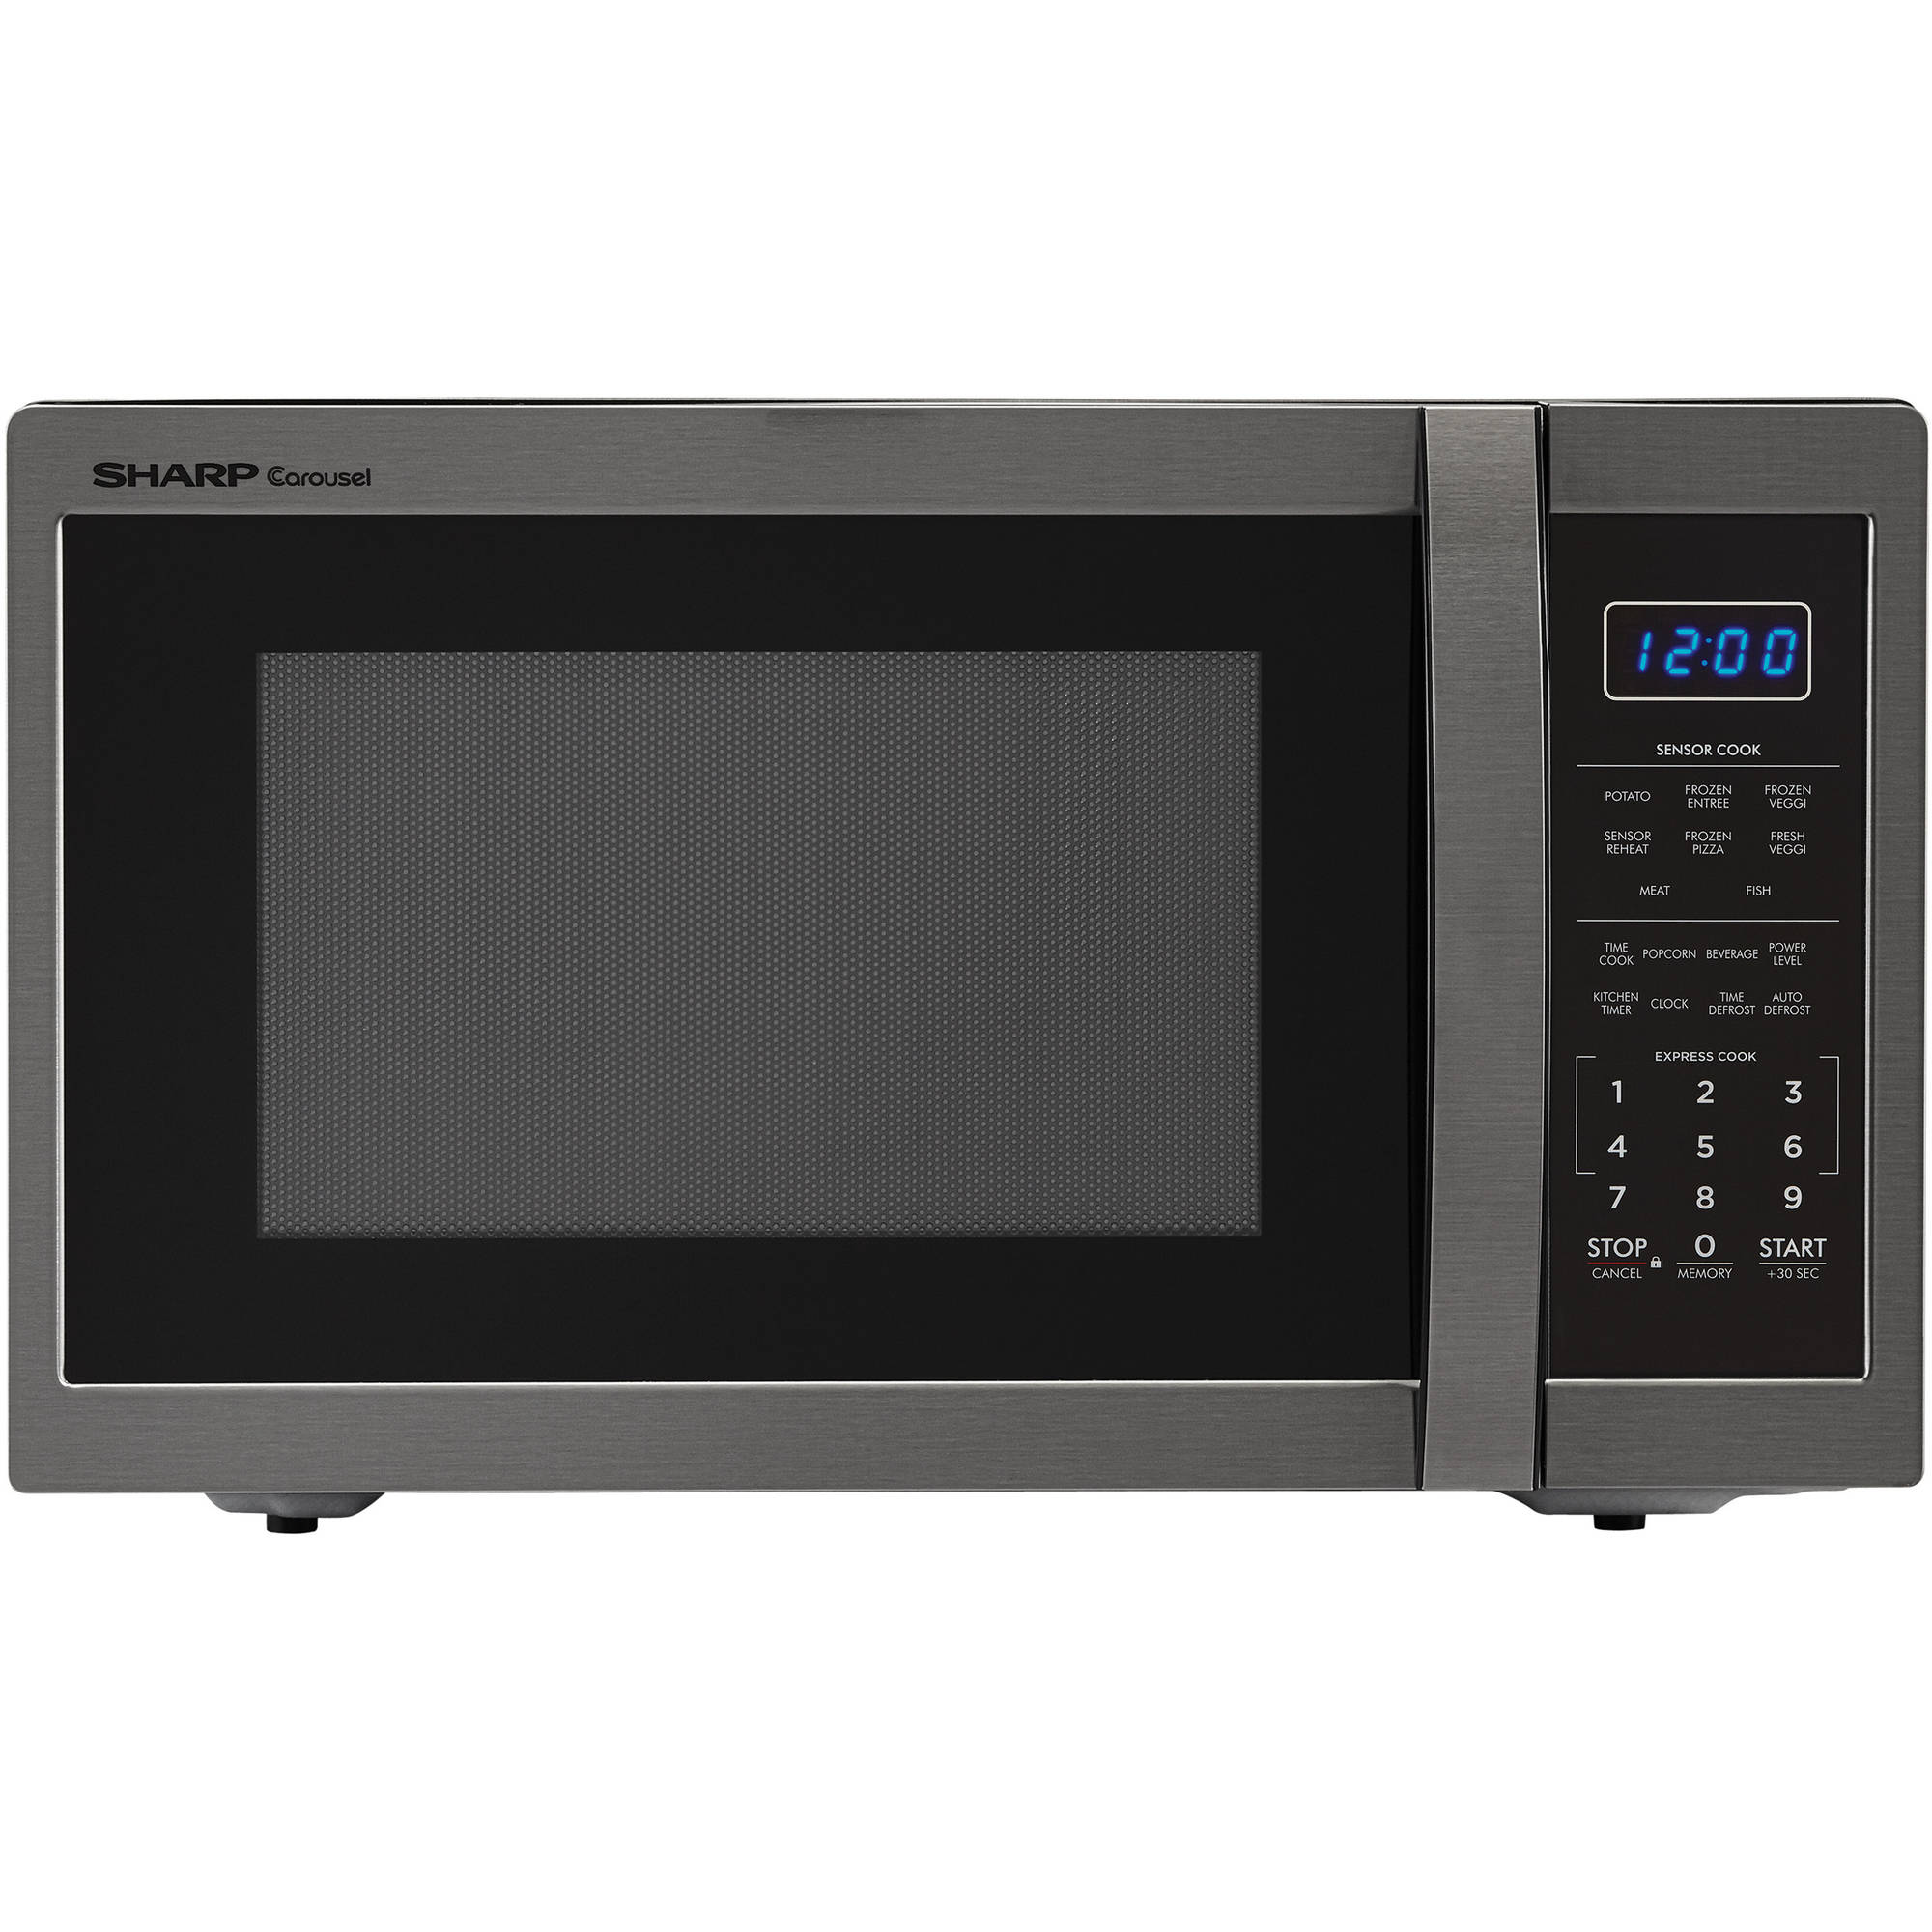 Sharp ZSMC1452CH 1.4 Cu Ft Microwave, Black Stainless Steel